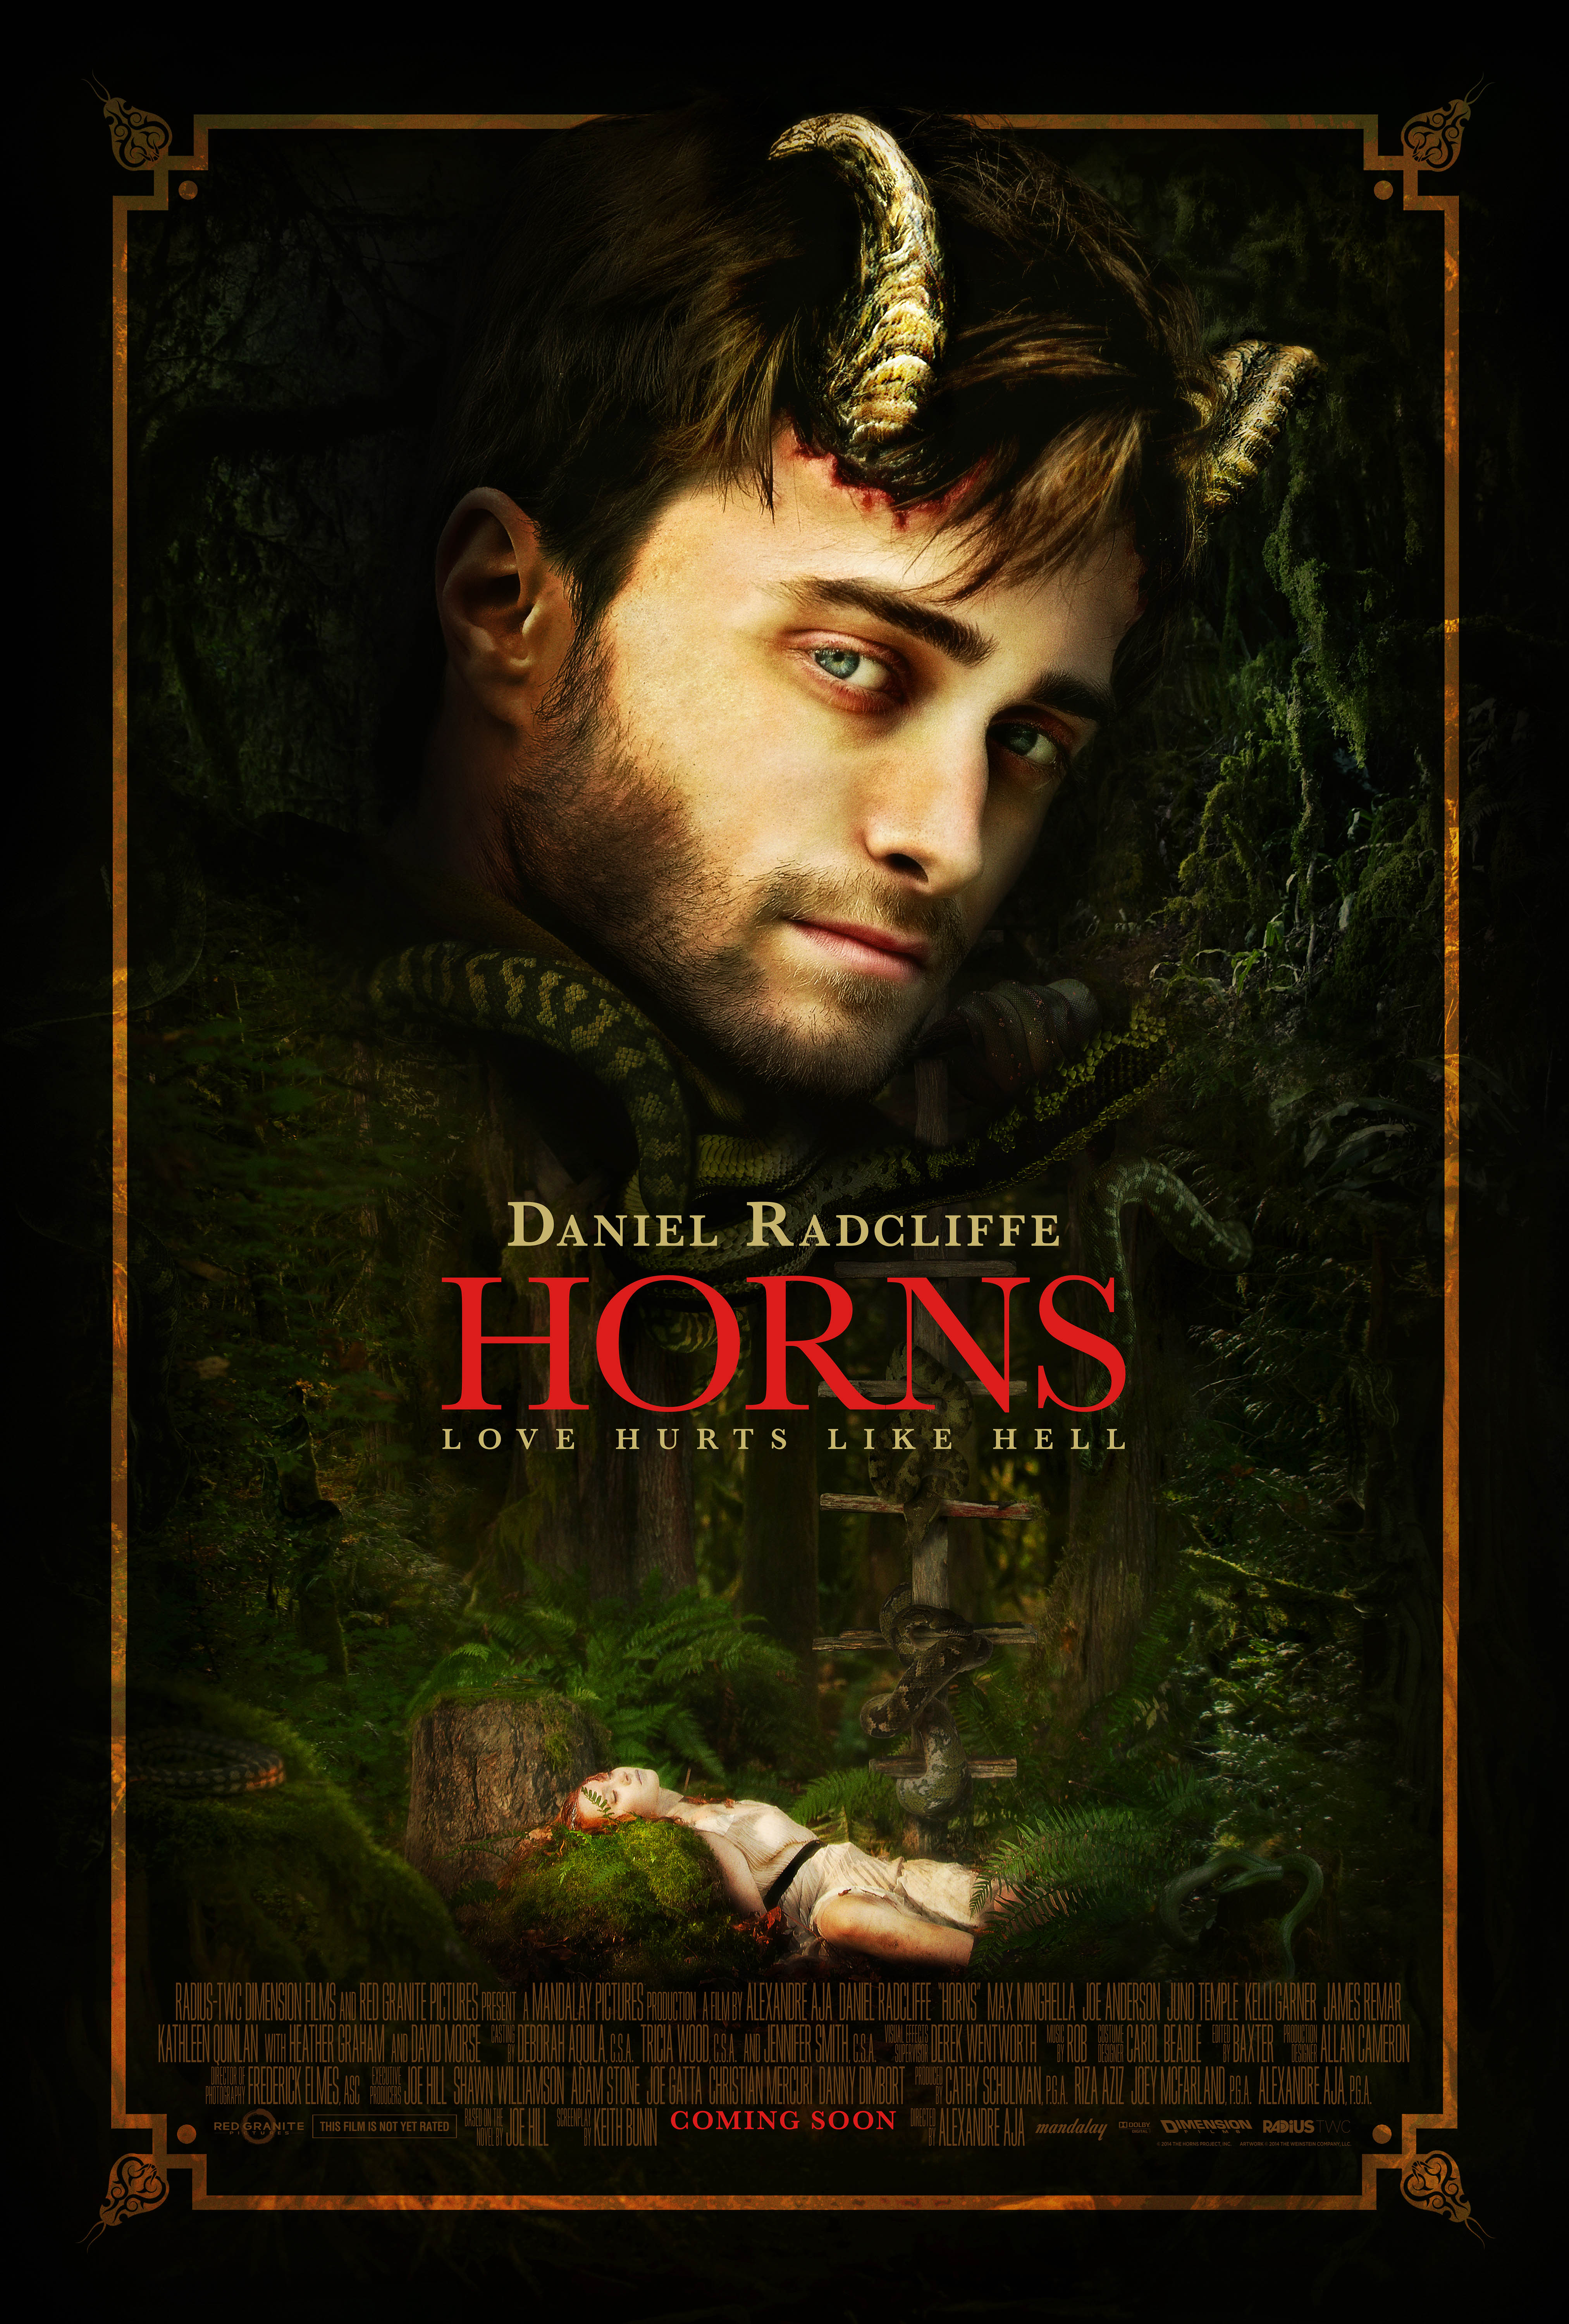 Horns (2013) Technical Specifications